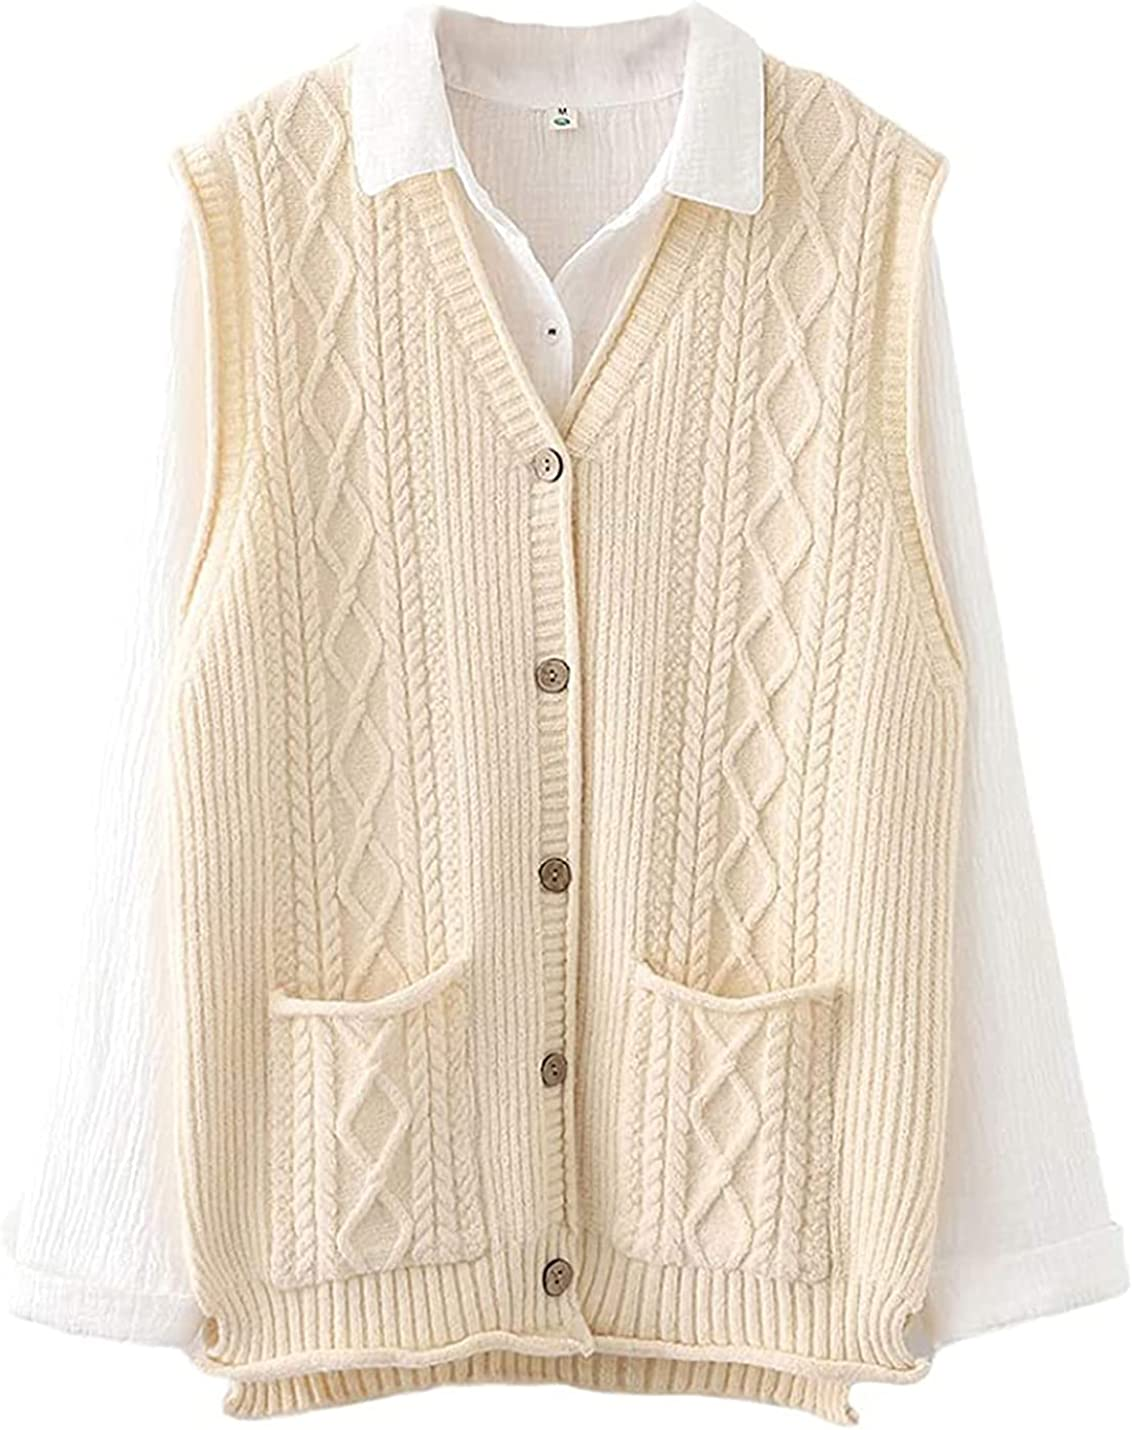 Women's Cable Knit Sweater Vest V Button Sleeveless New sales Neck Dealing full price reduction Down Ca